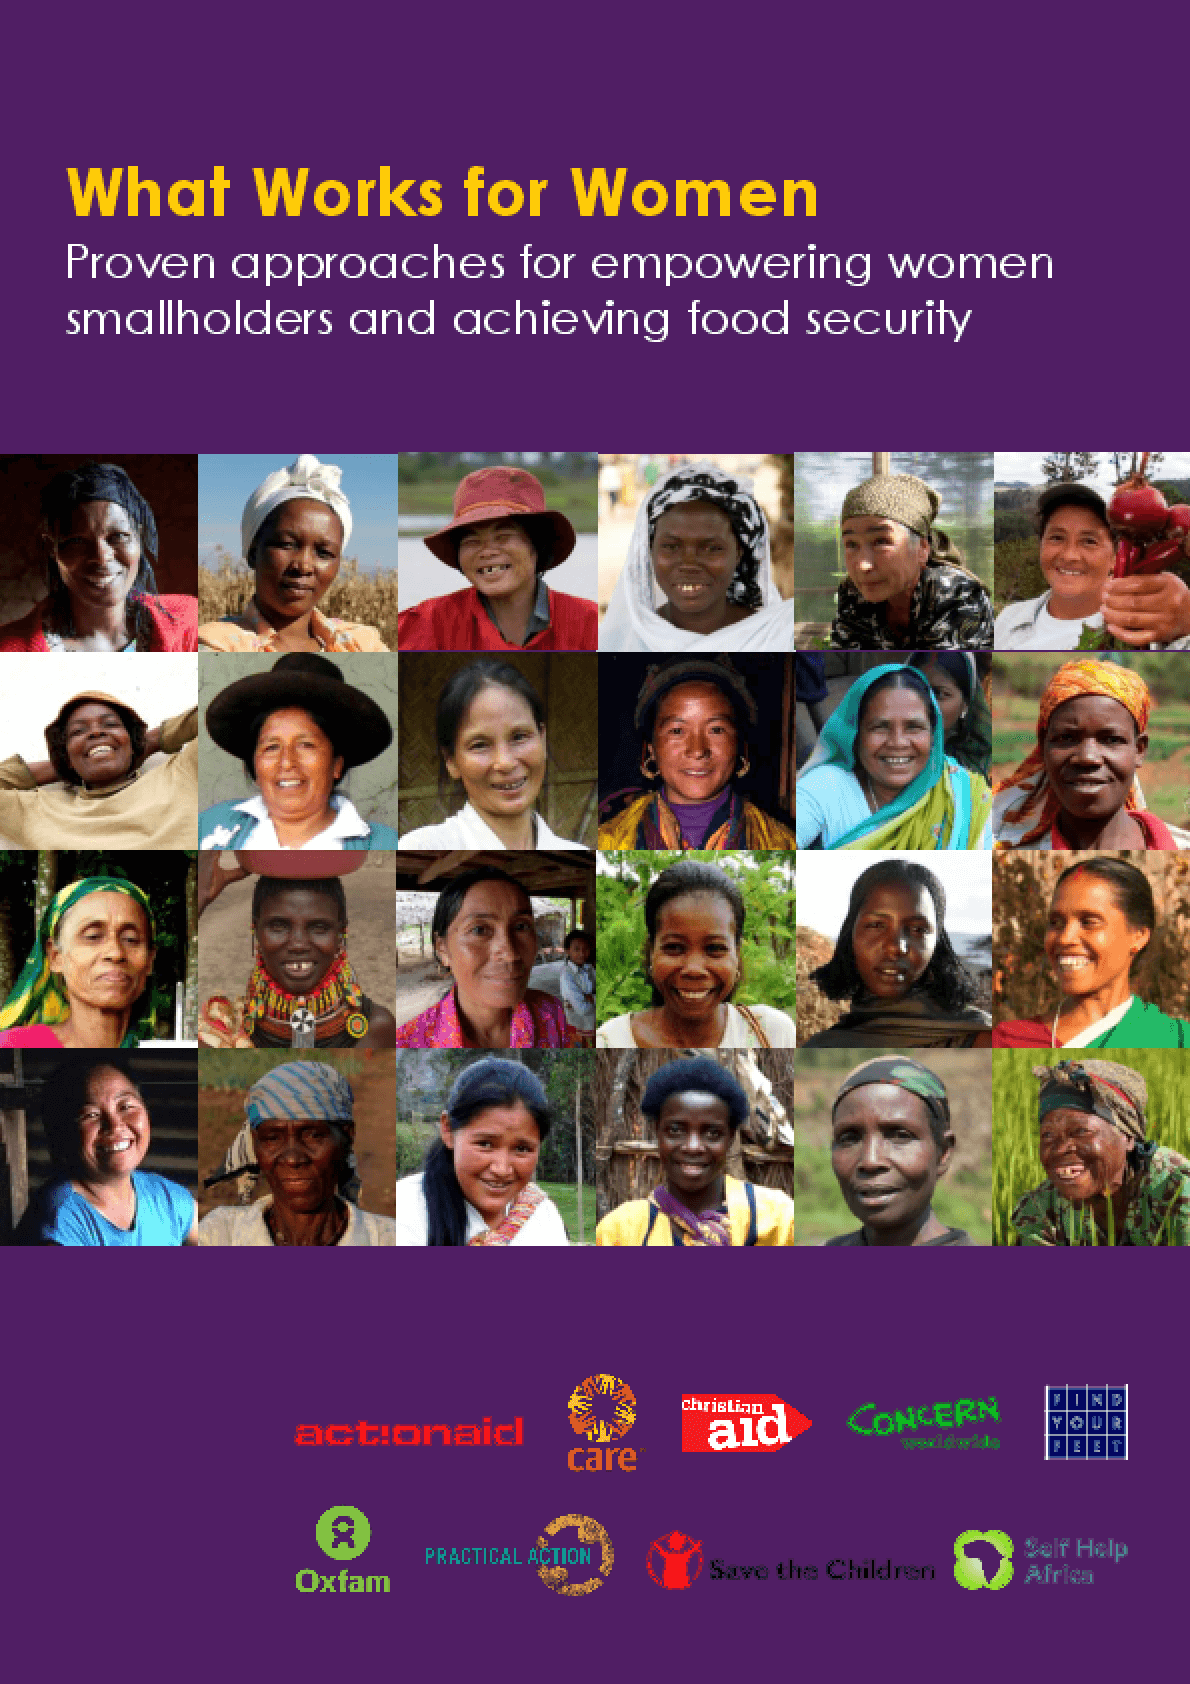 What Works for Women: Proven Approaches for Empowering Women Smallholders and Achieving Food Security